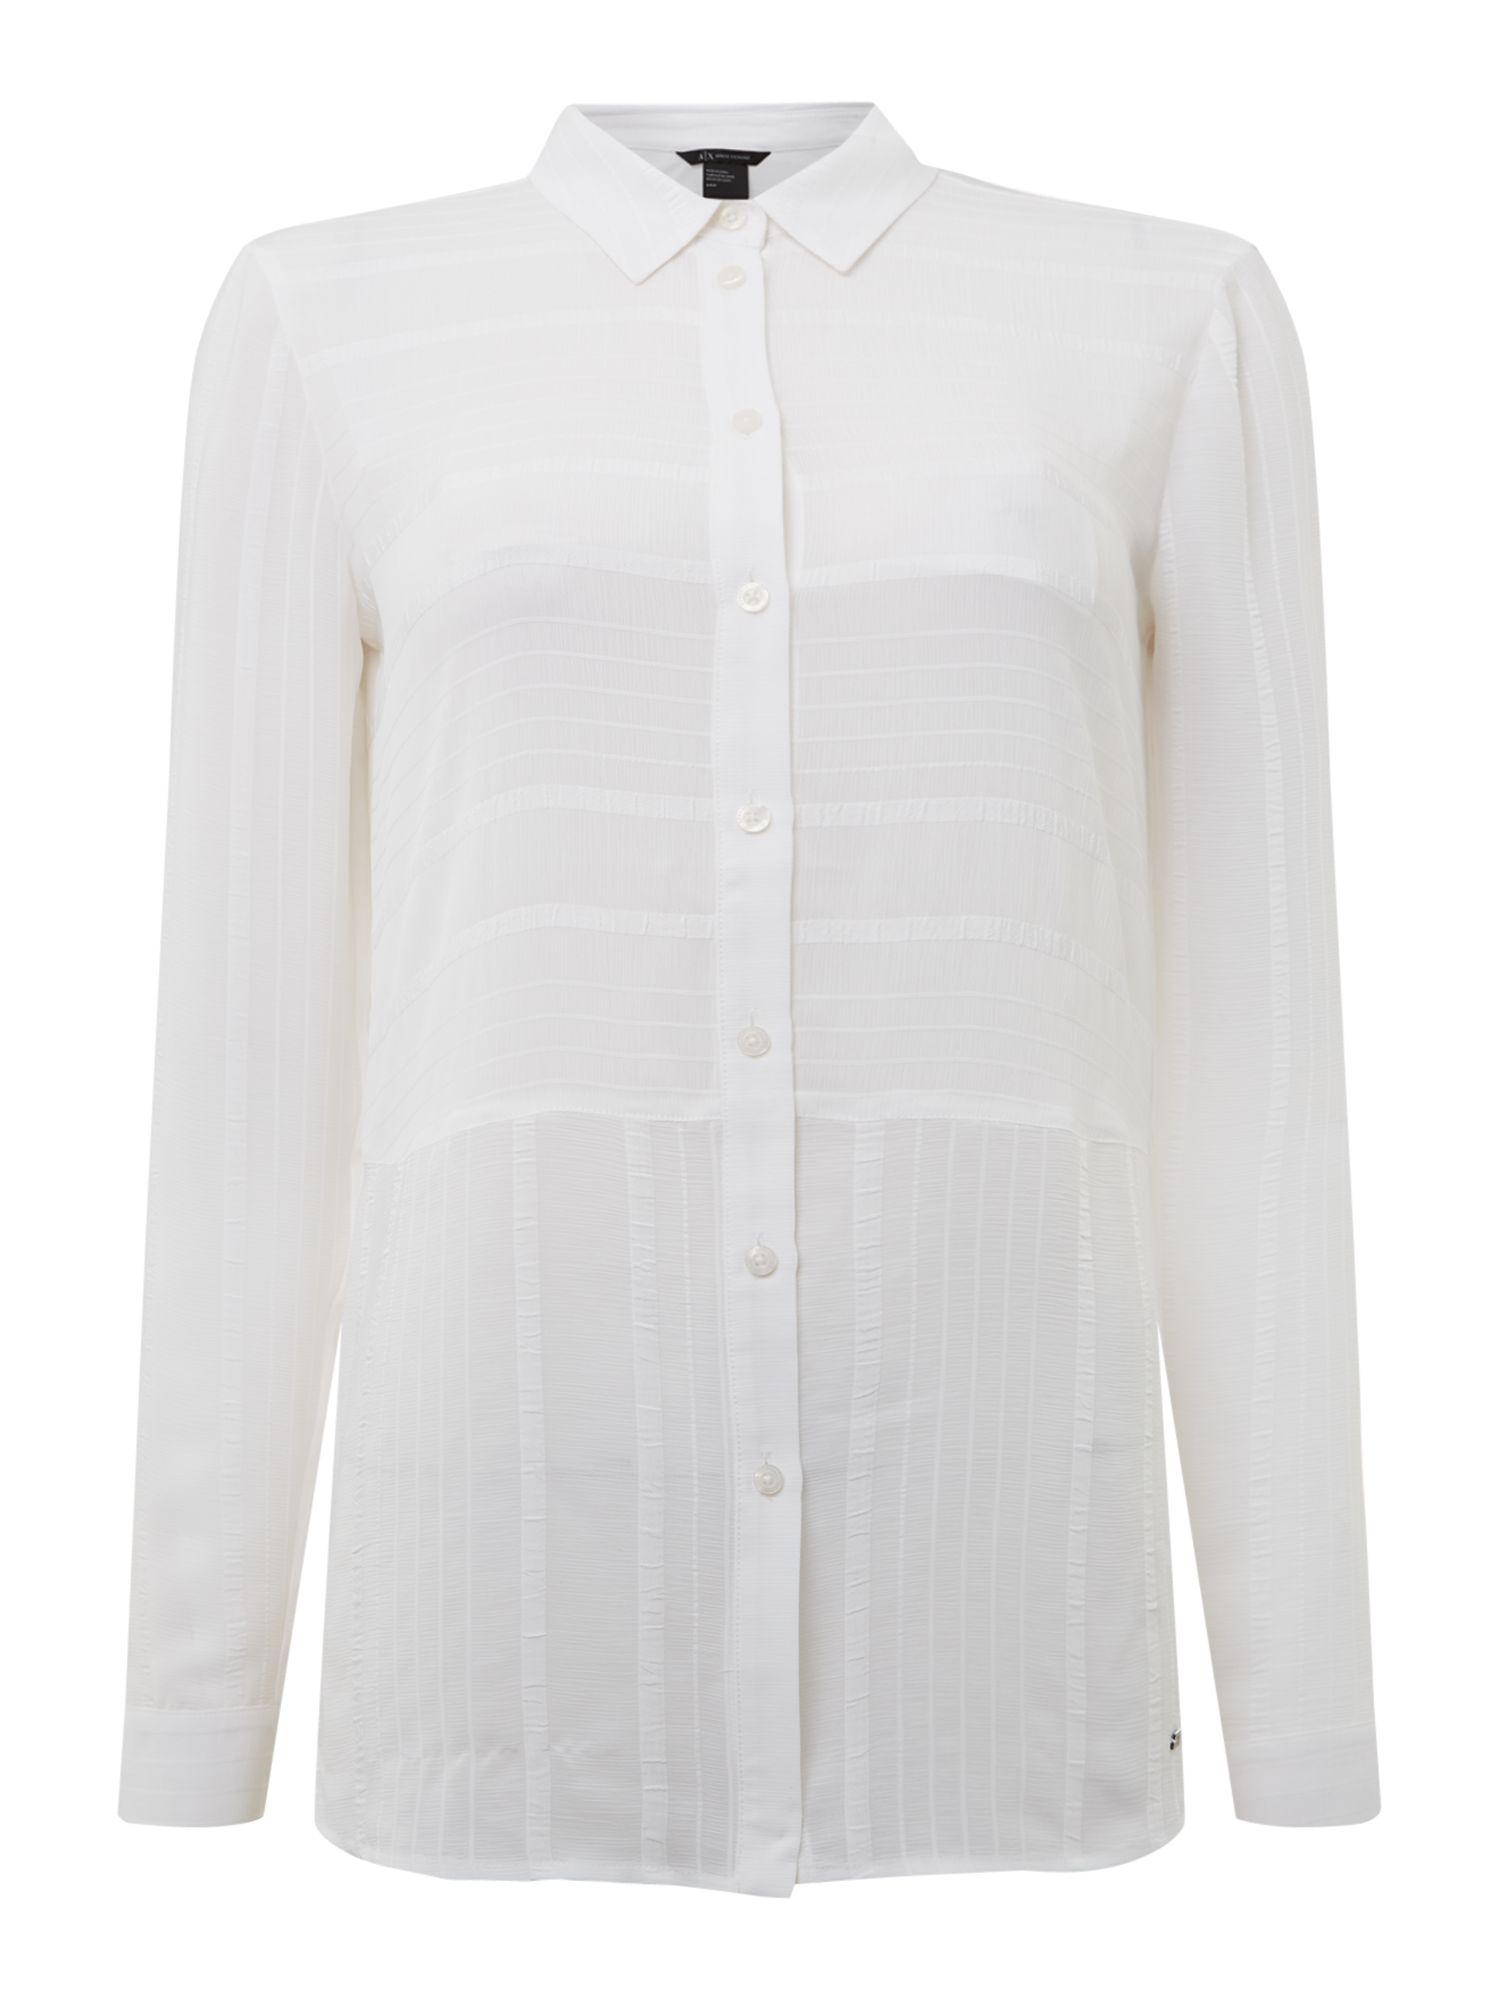 Armani Exchange Long Sleeve Shirt in White, White